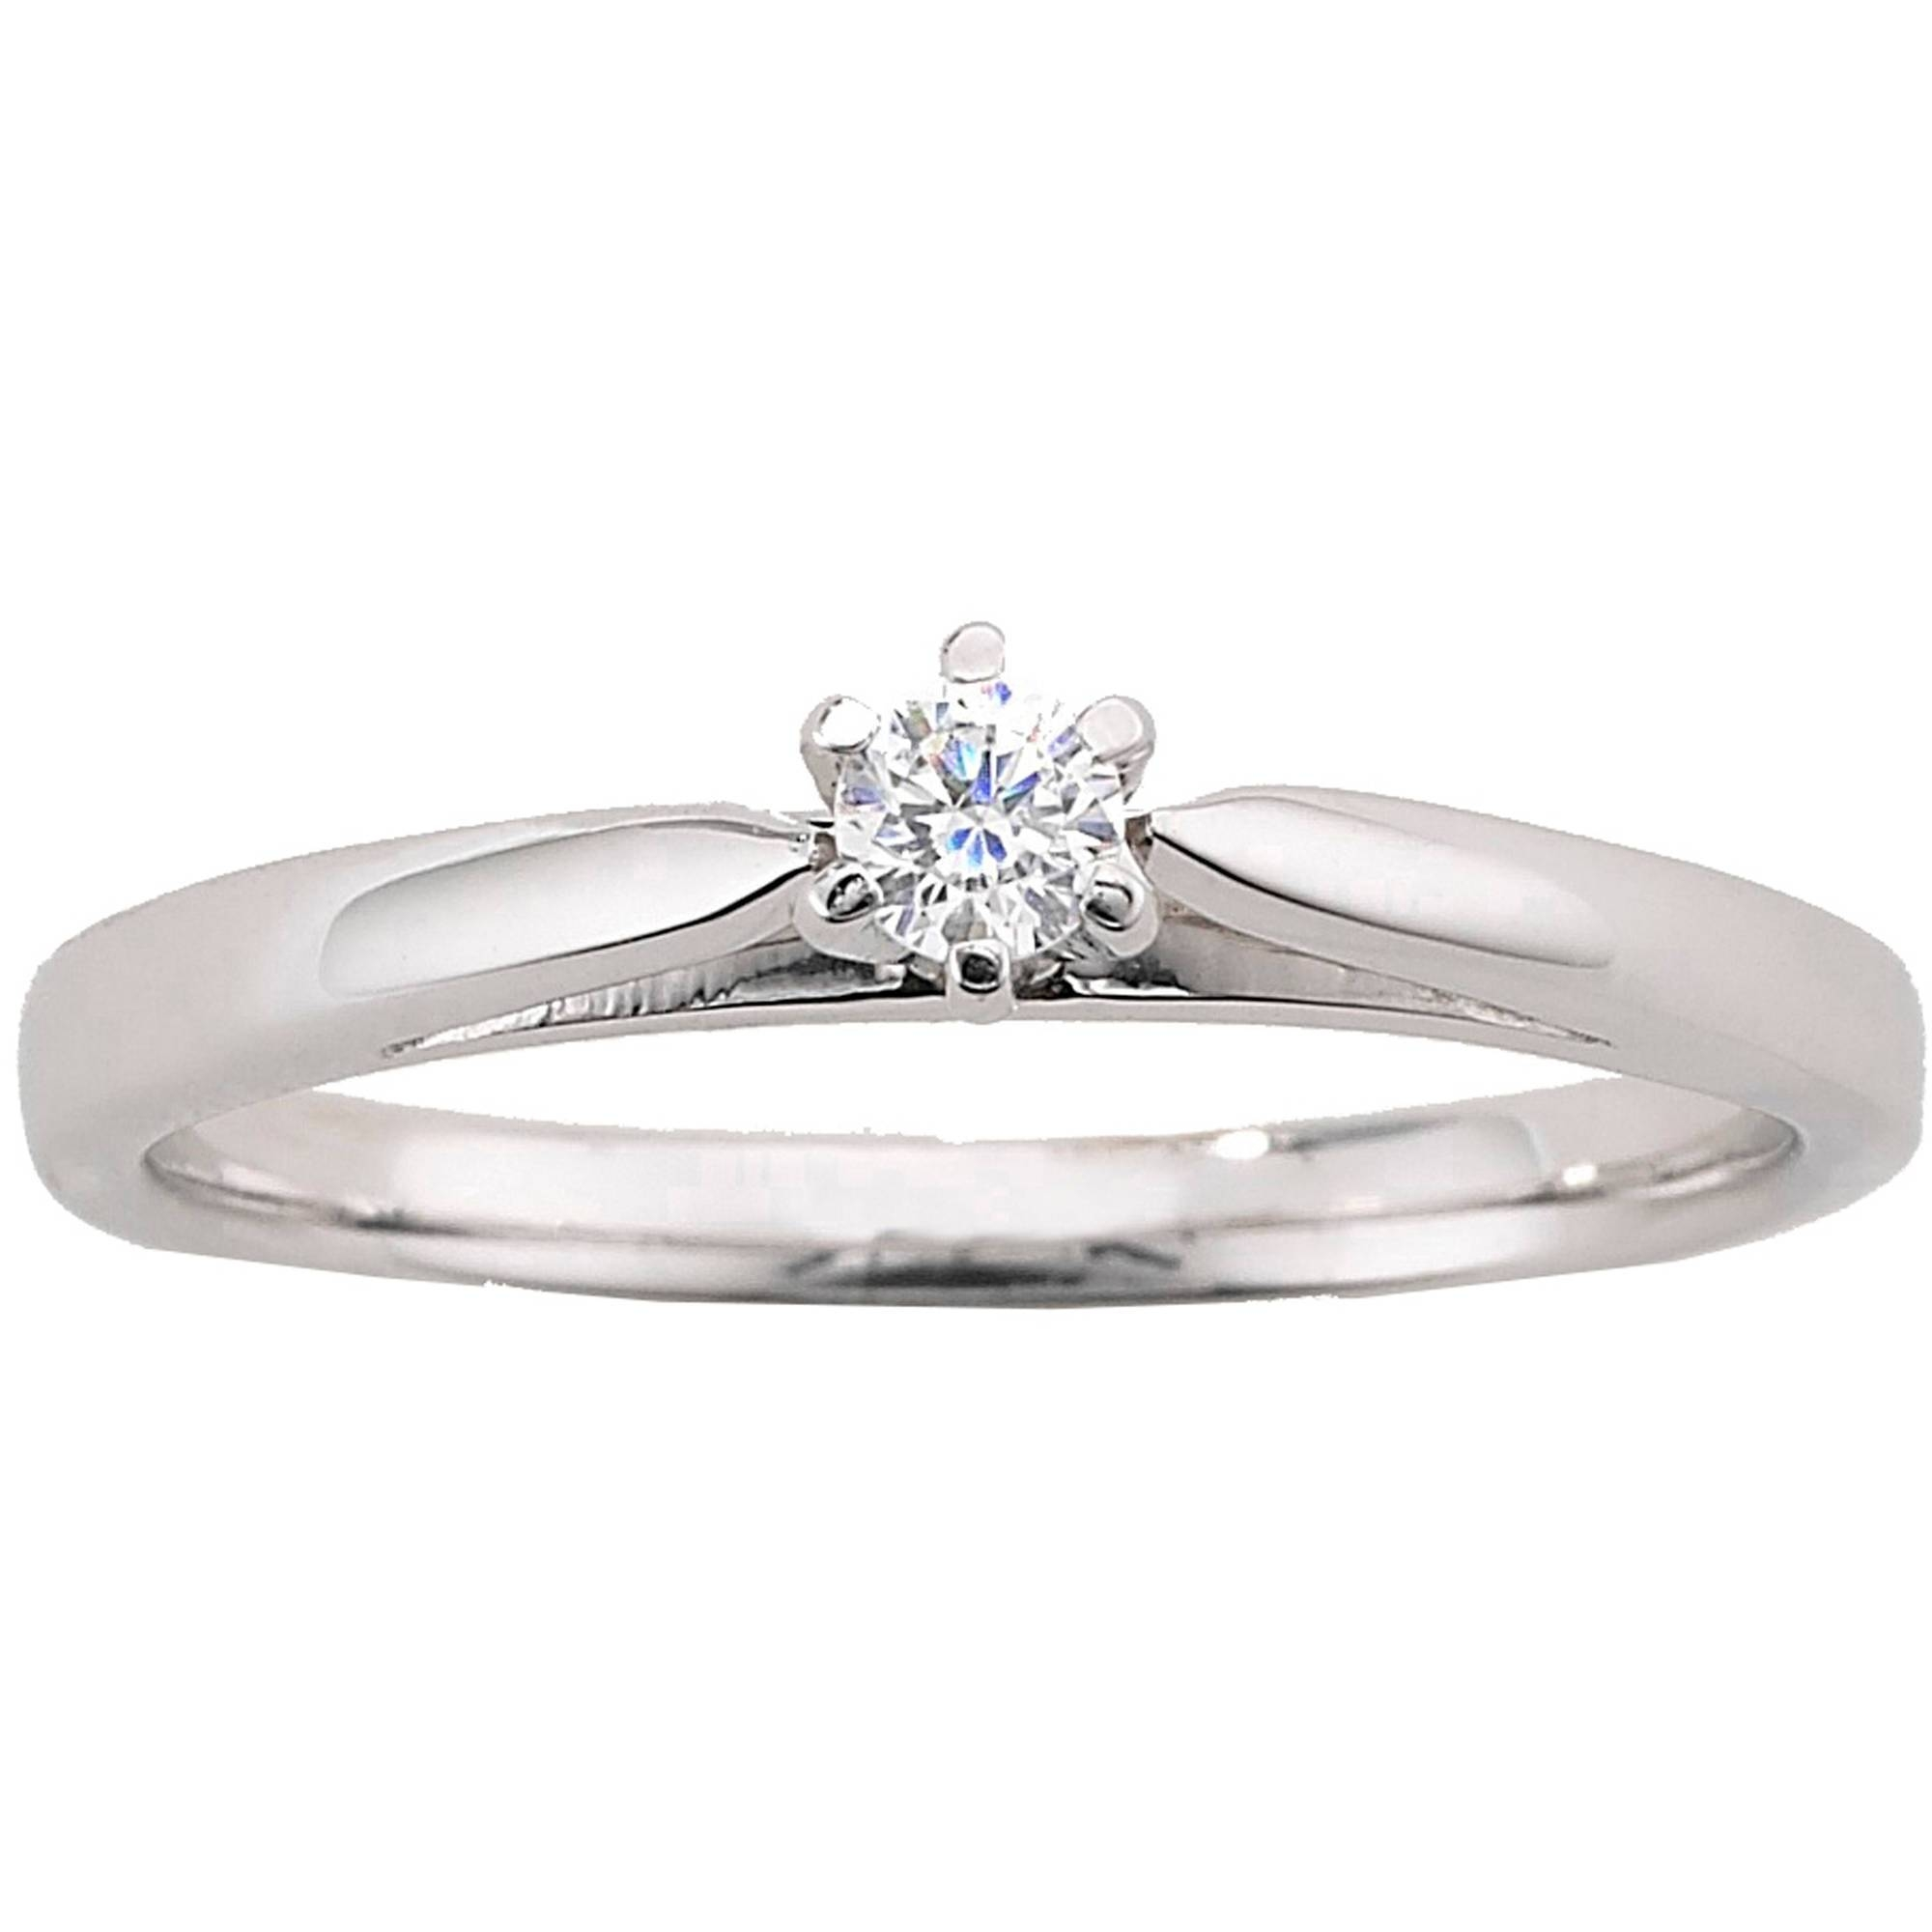 Always & Forever Platinaire 1/12 Carat Diamond Round Solitaire Regarding Walmart Engagement Rings (View 2 of 15)